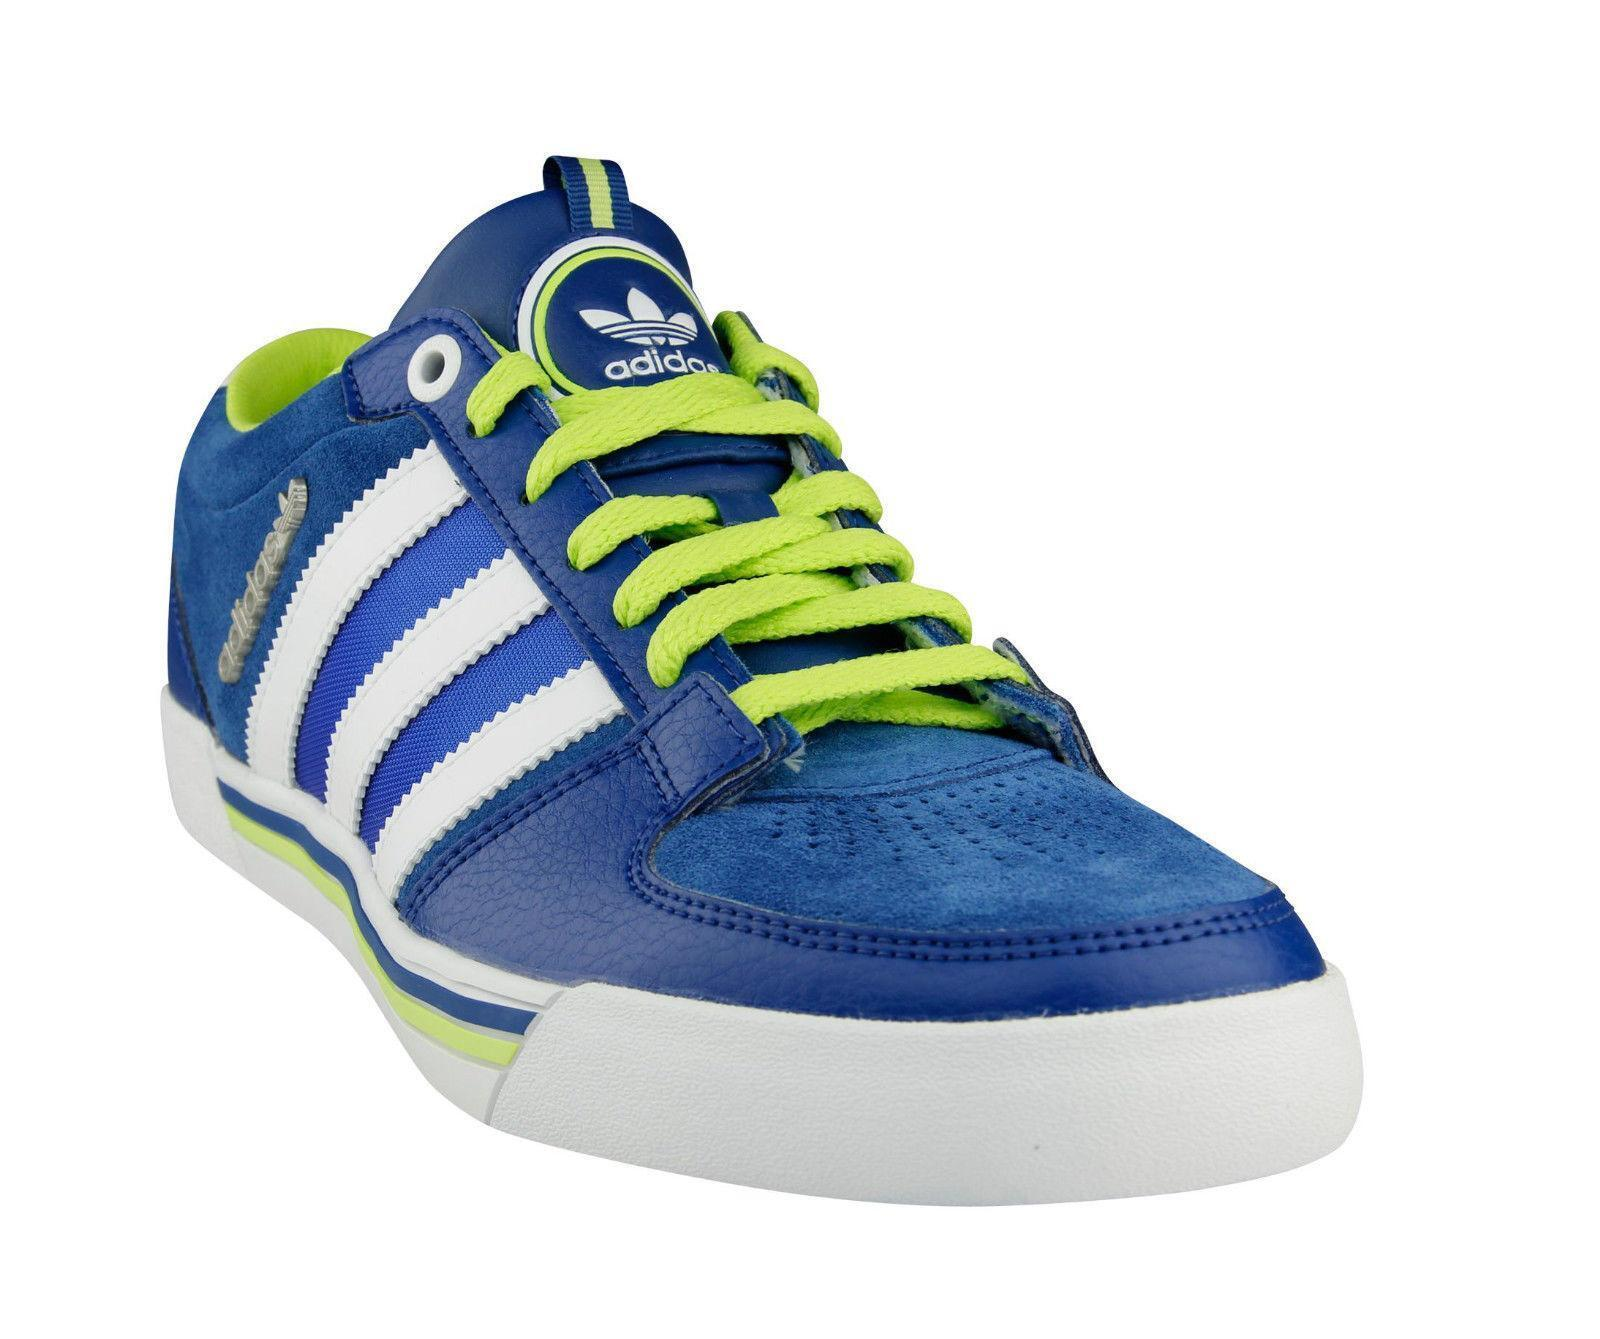 Mens ADIDAS Leather PEEX LOW Lone Blue Leather ADIDAS Casual Trainers M22290 b4cc7c